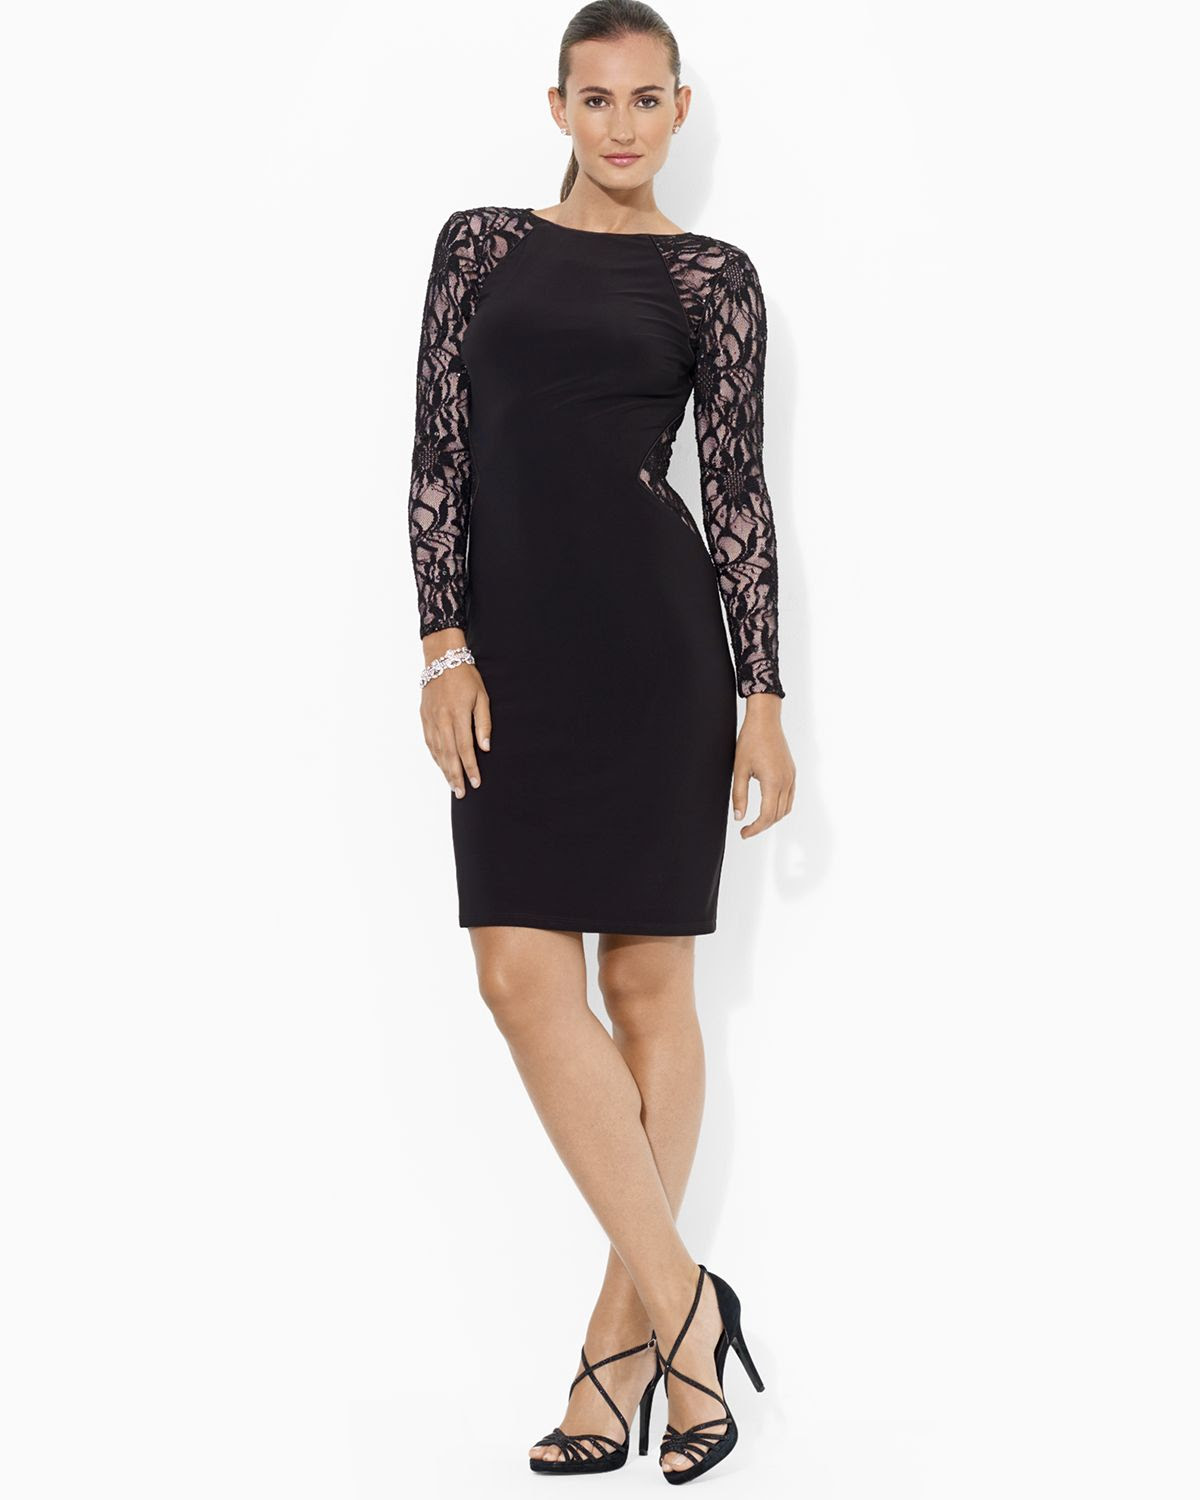 ralph lauren black lauren dress stretch sequin lace and matte jersey product 1 16347884 1 678879775 normal